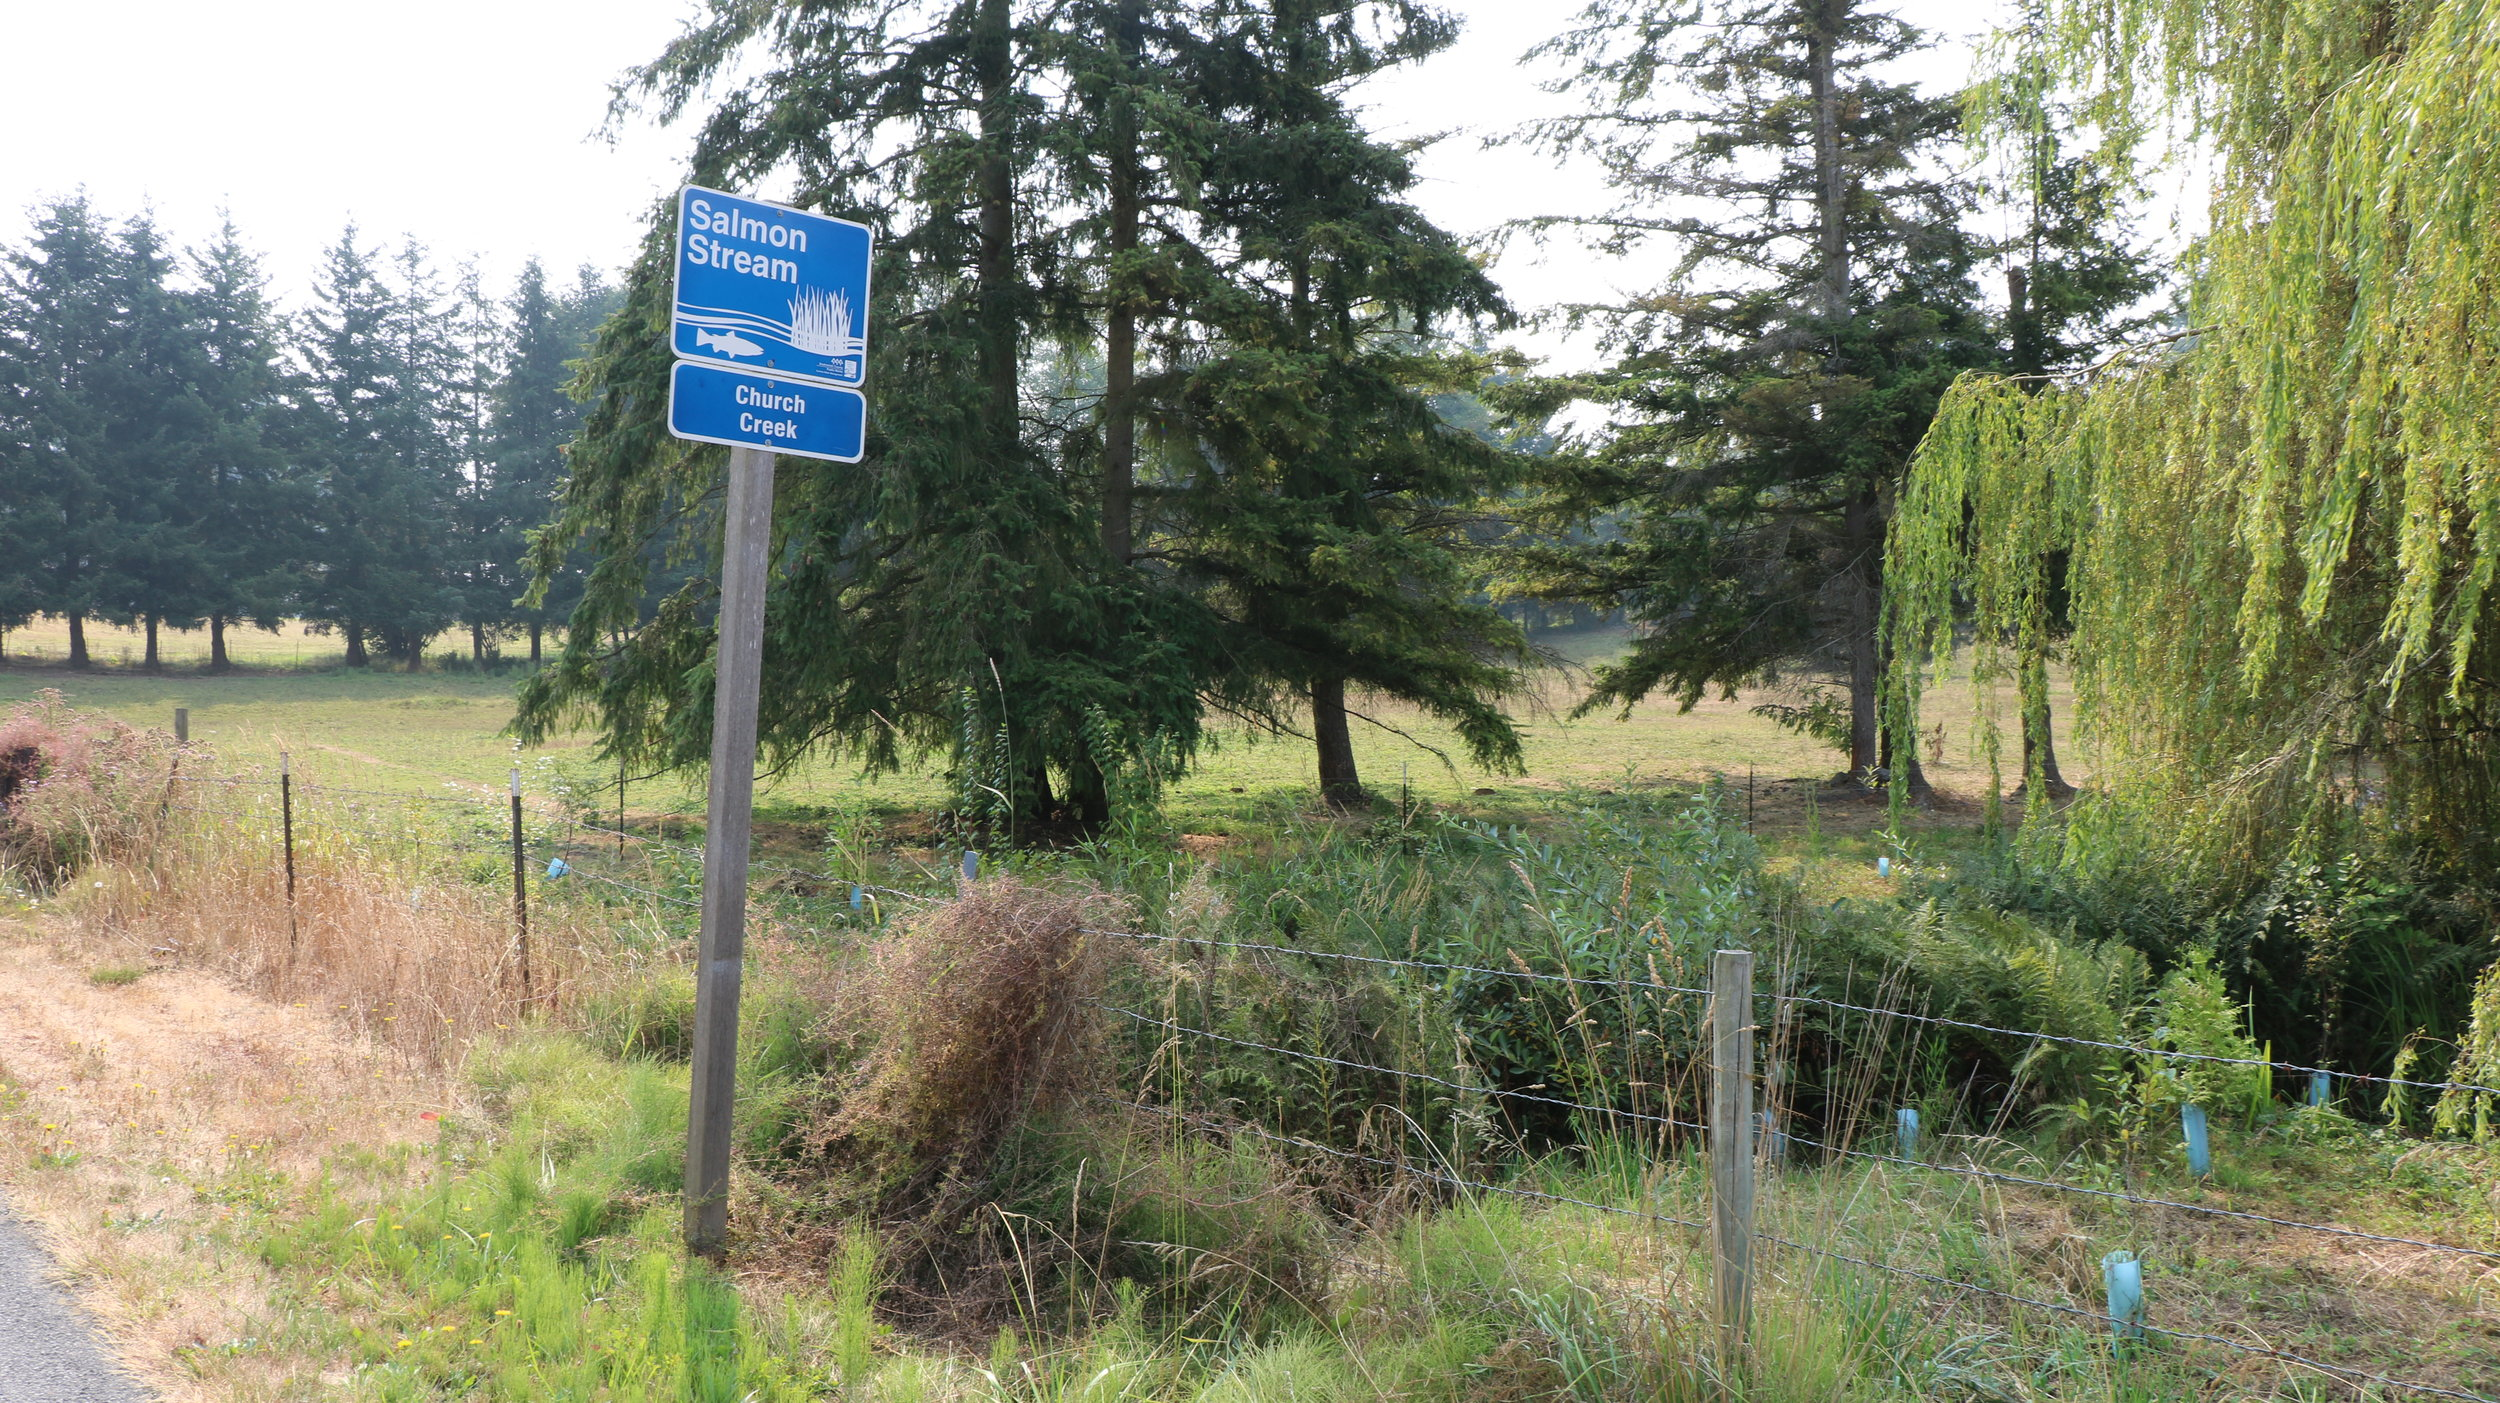 Salmon Stream sign next to the riparian buffer and exclusion fencing on Bill's property.